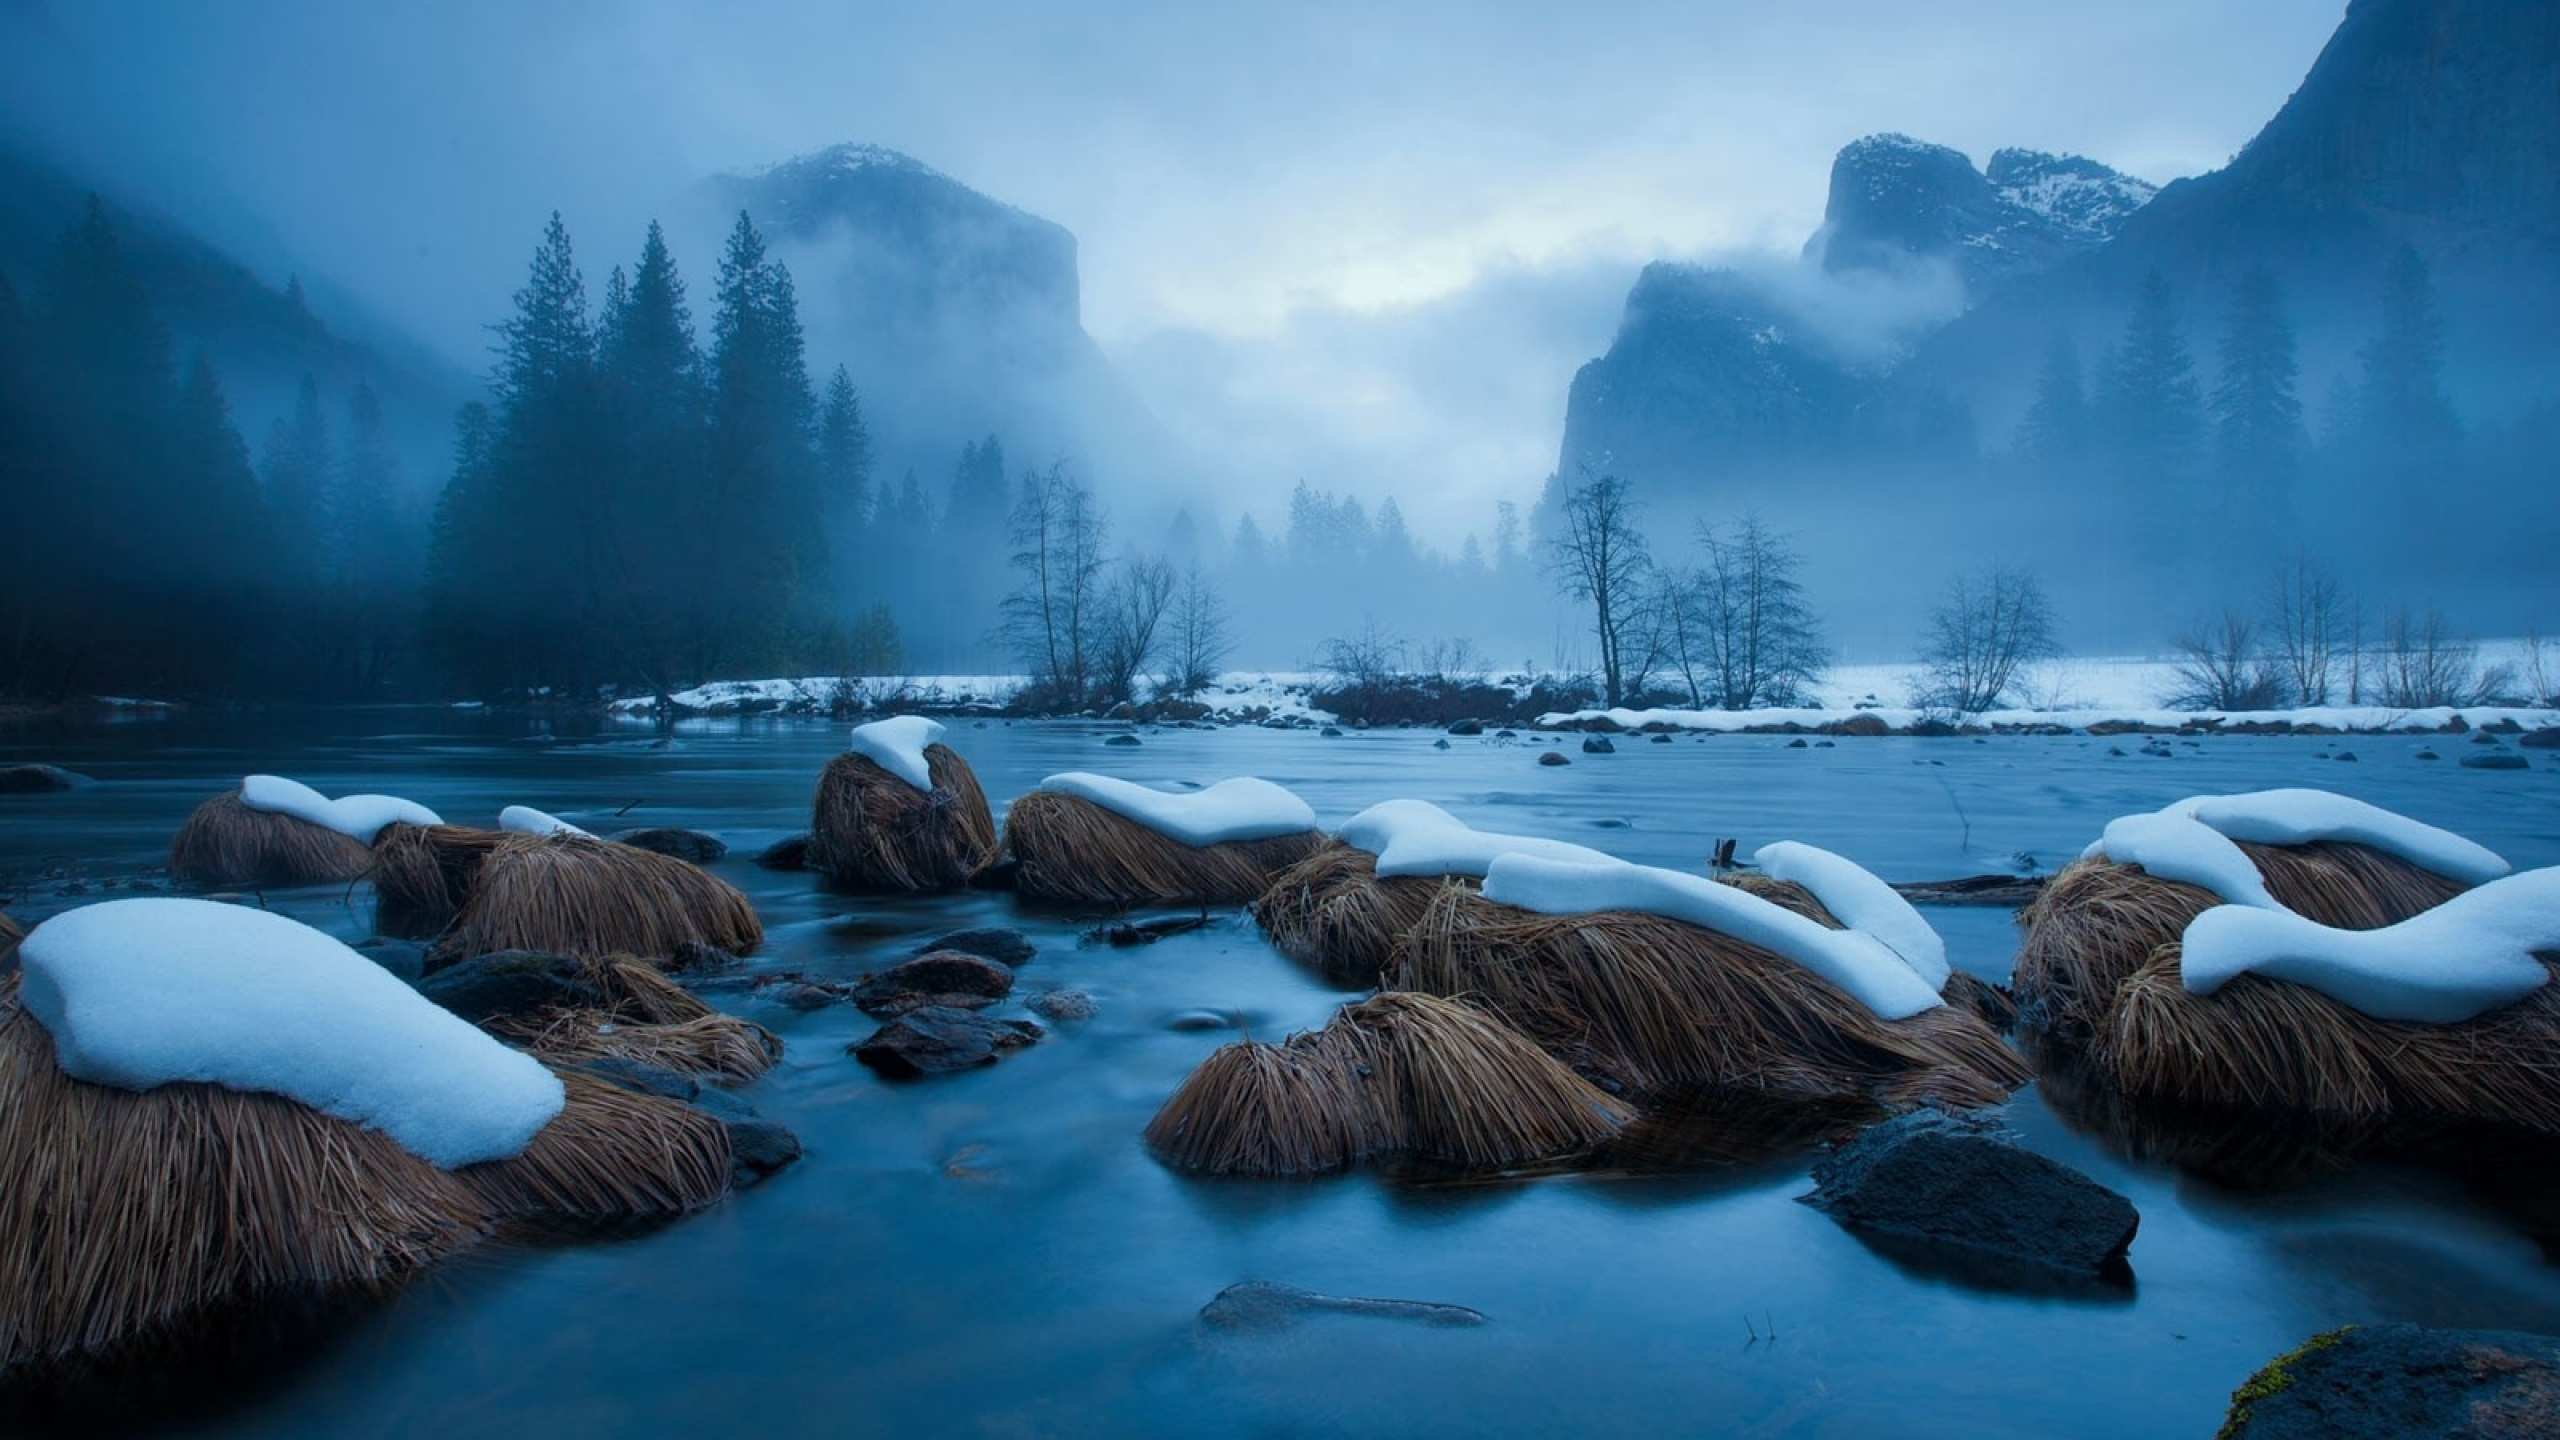 2560x1440 yosemite national park winter how to set wallpaper on your desktop